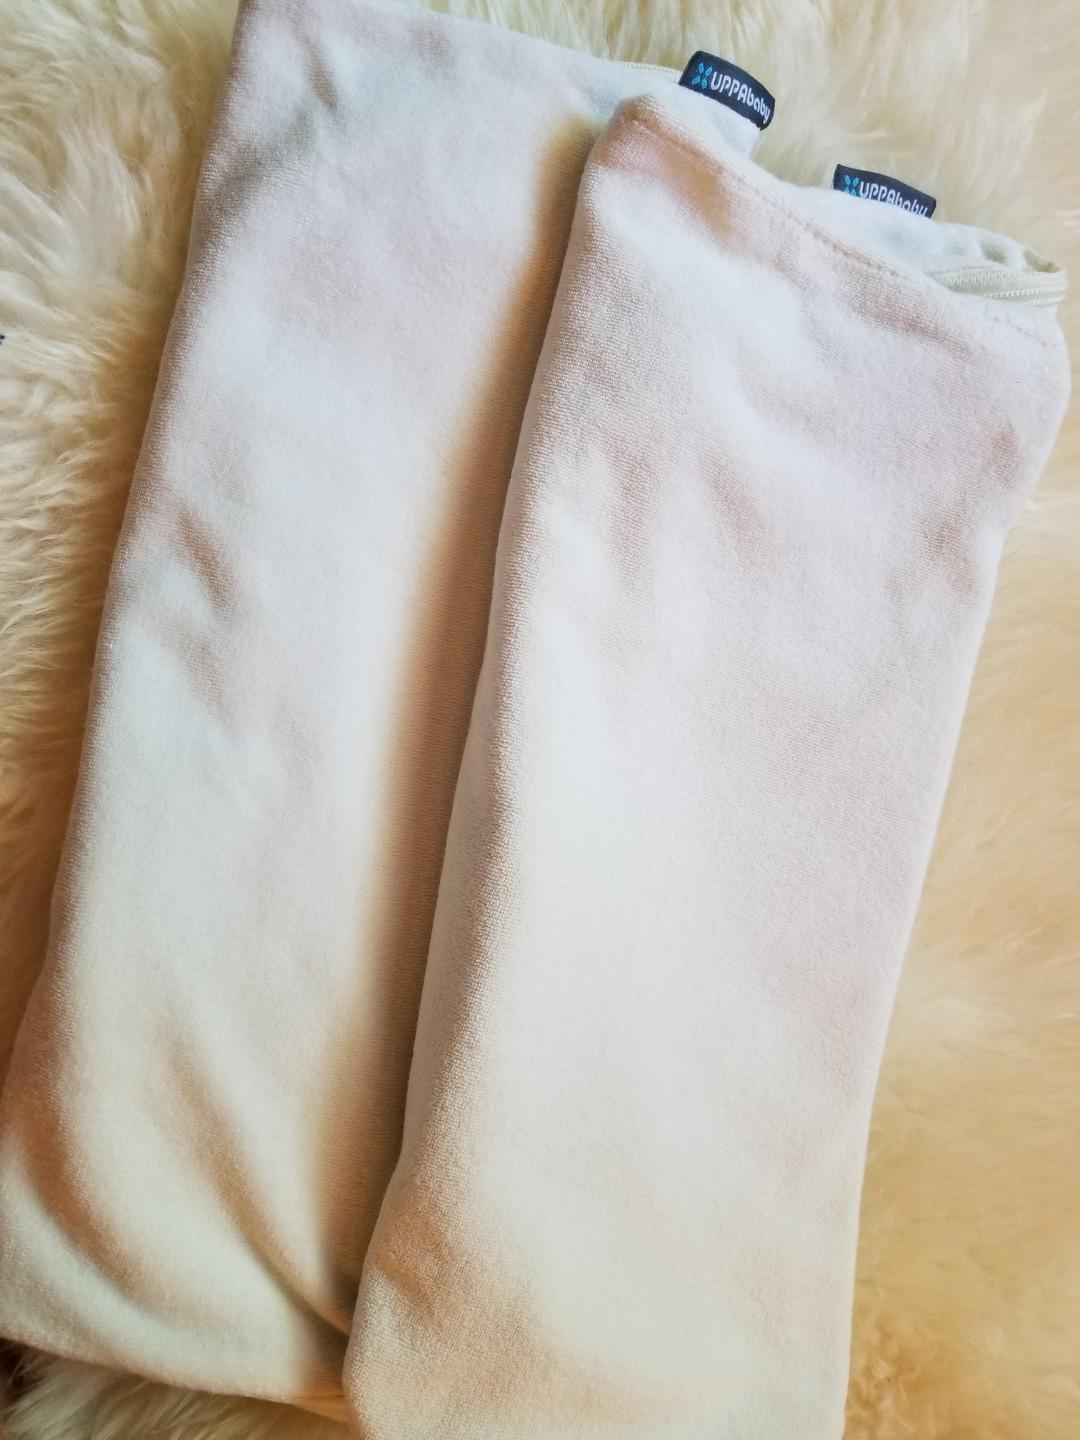 Uppababy bassinet mattress covers. New. Official. Purchased from West coast kids for $60 for both. Take each for $20 or both for $30 if picked up at Gerrard Main or 20 Bay. $32 for Yorkville pickup.